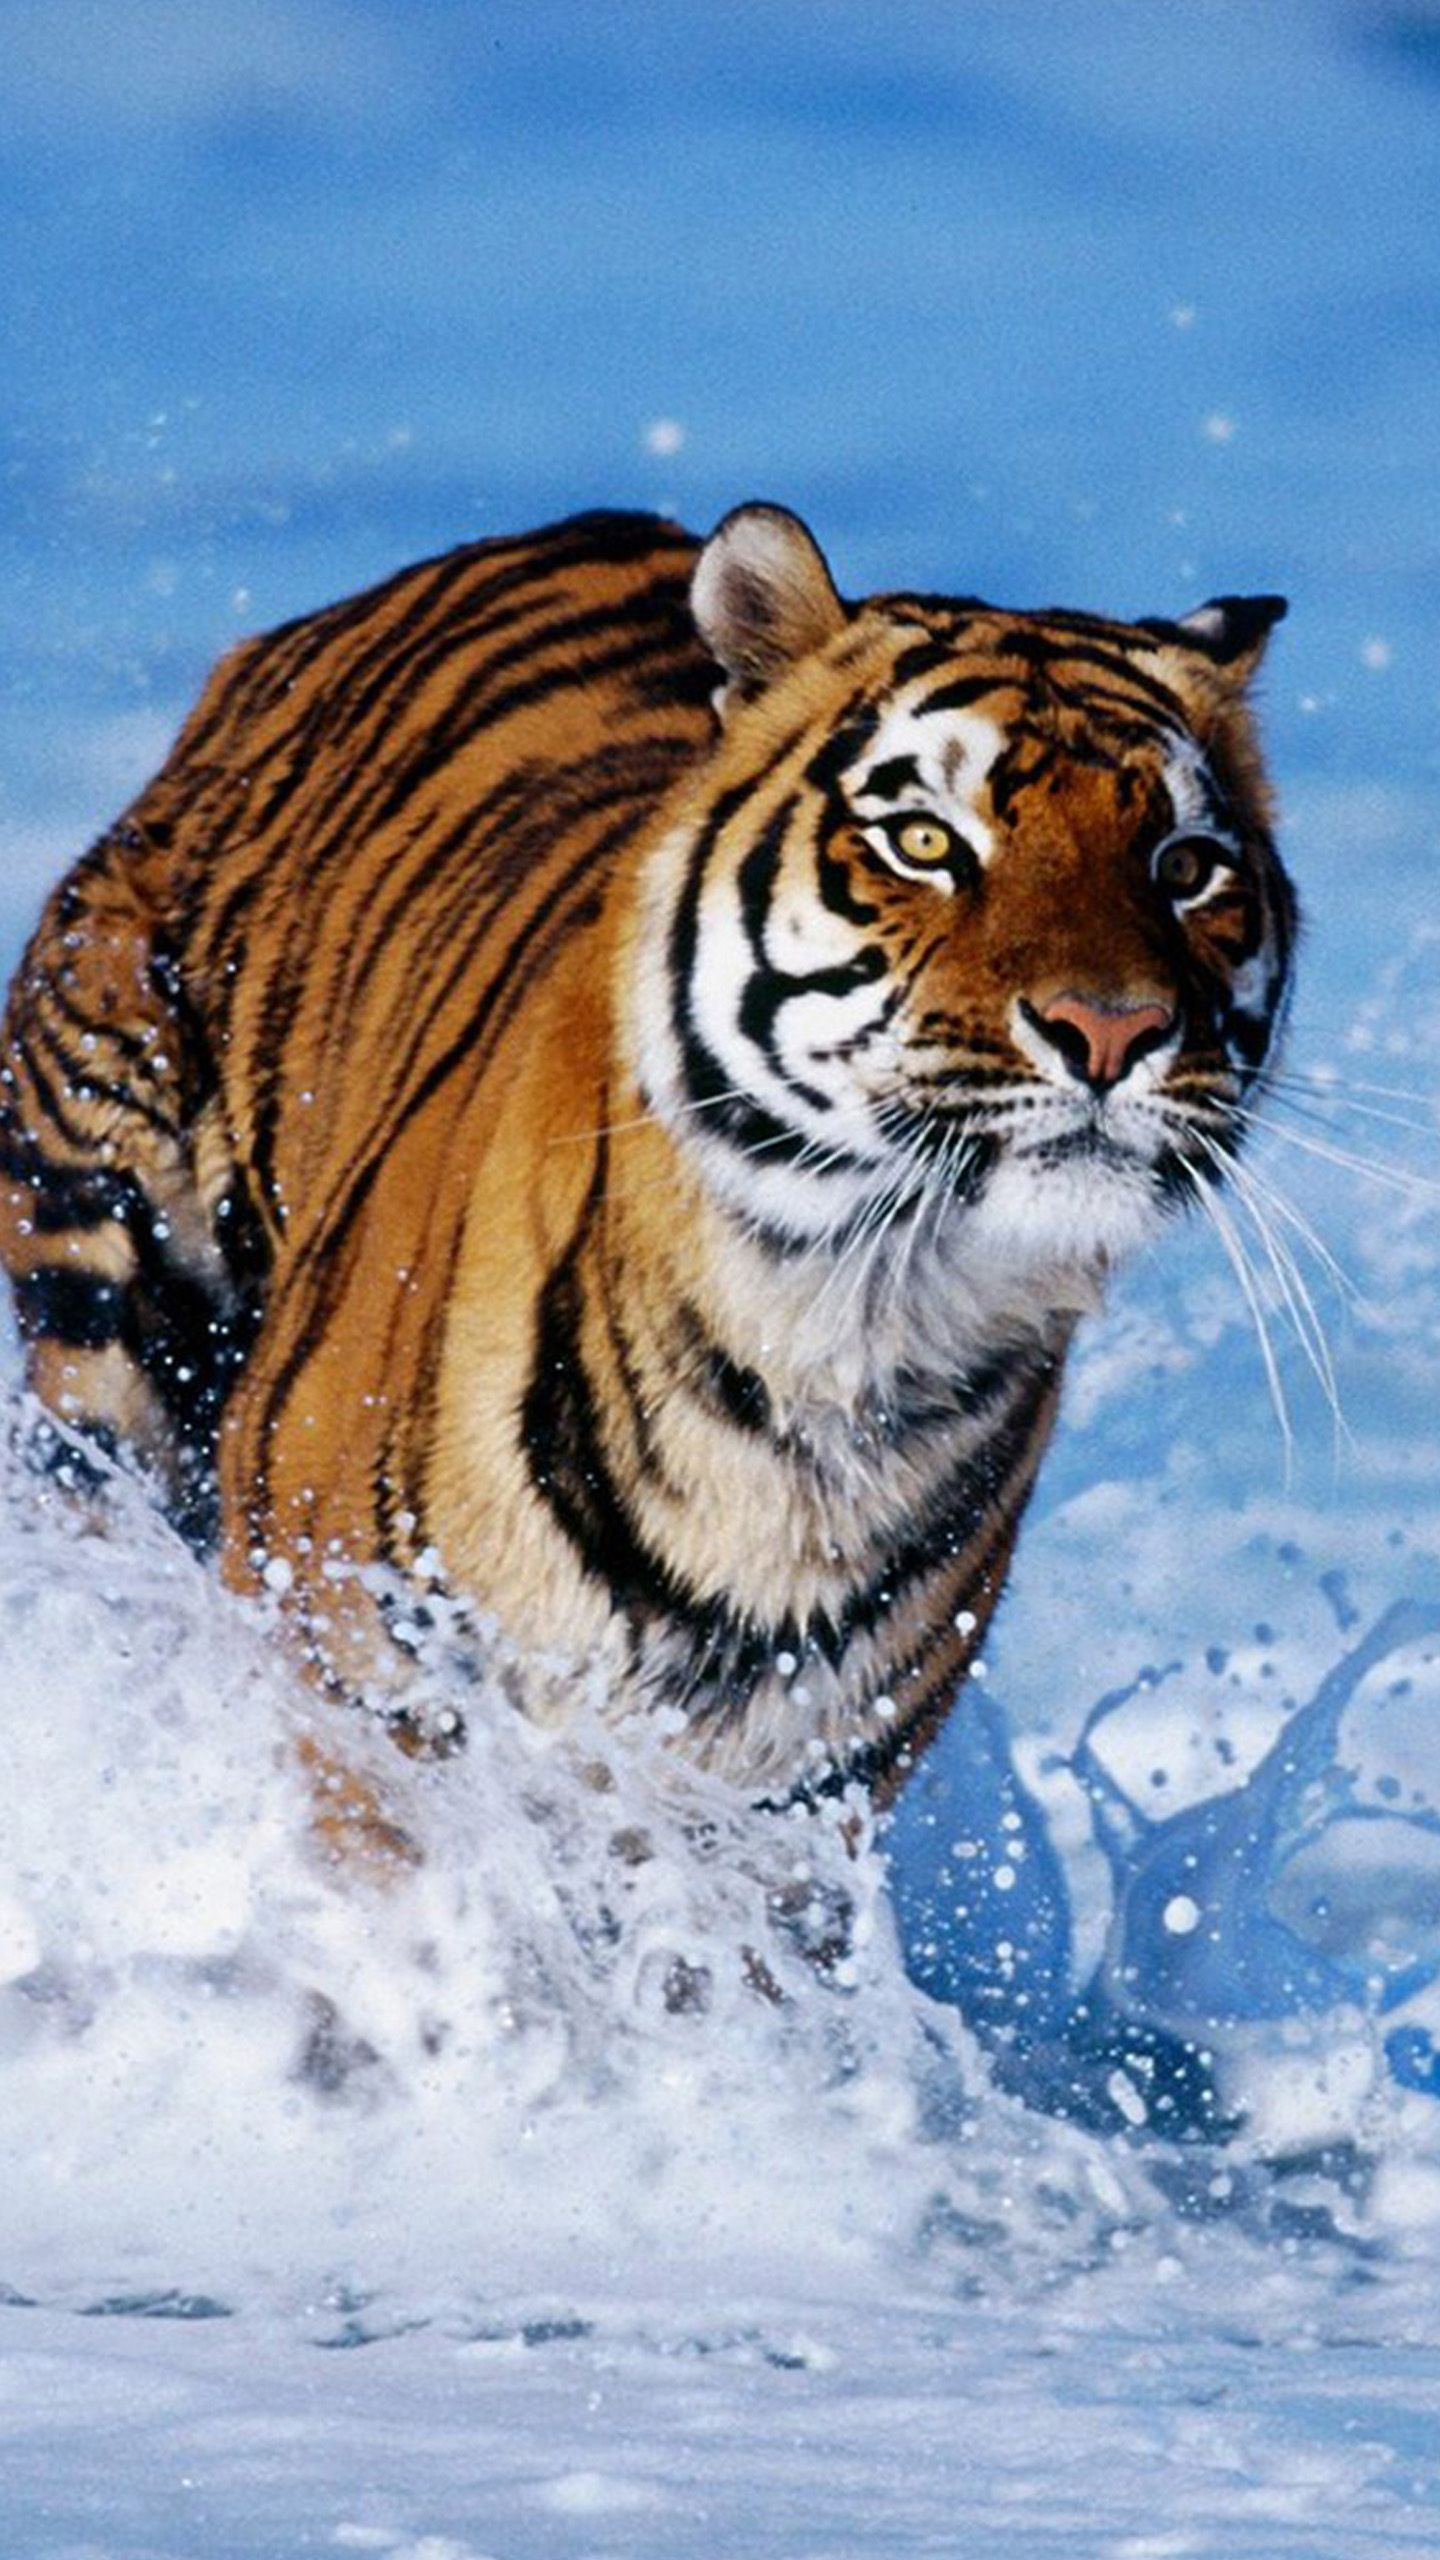 Pin by aashqalmadi on Animals Animals, Tiger, Wild cats